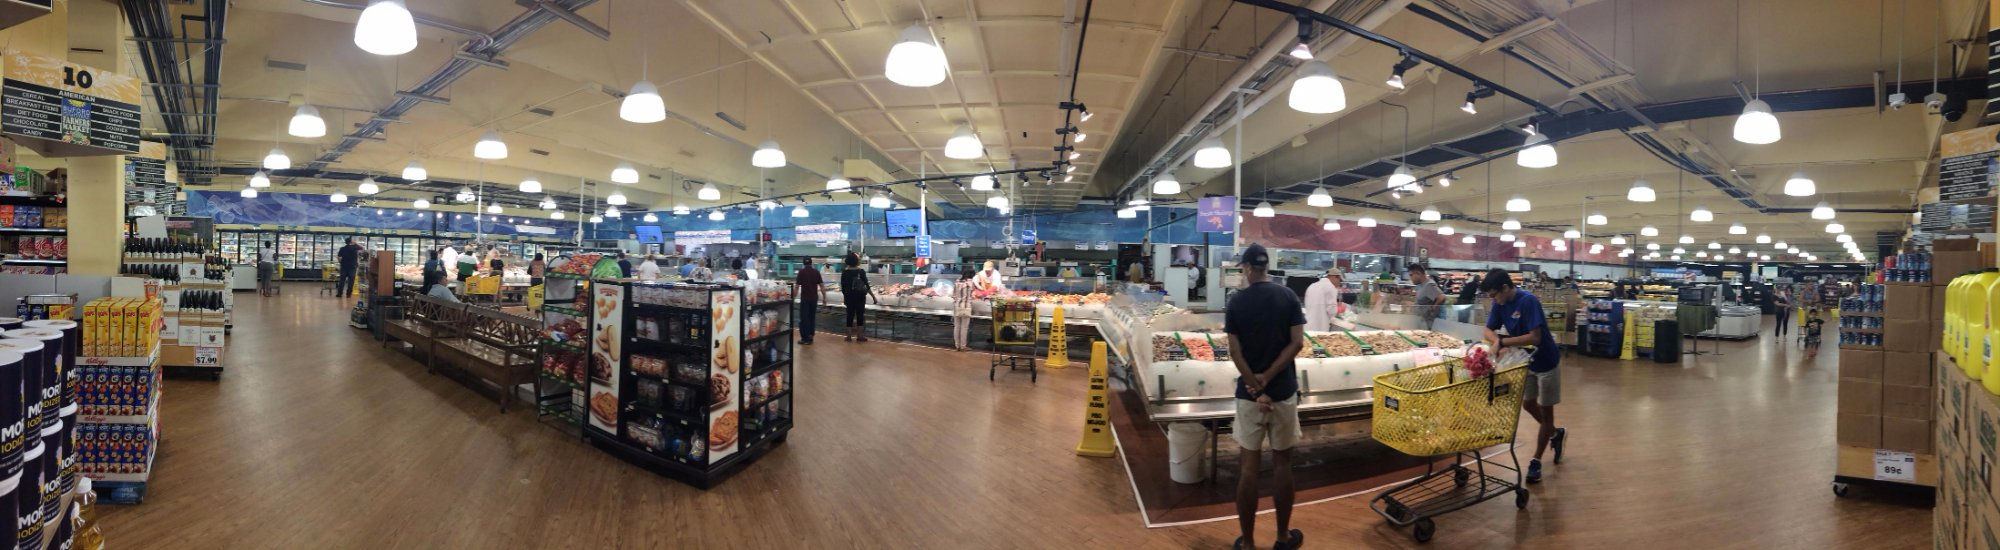 Seafood and meat area